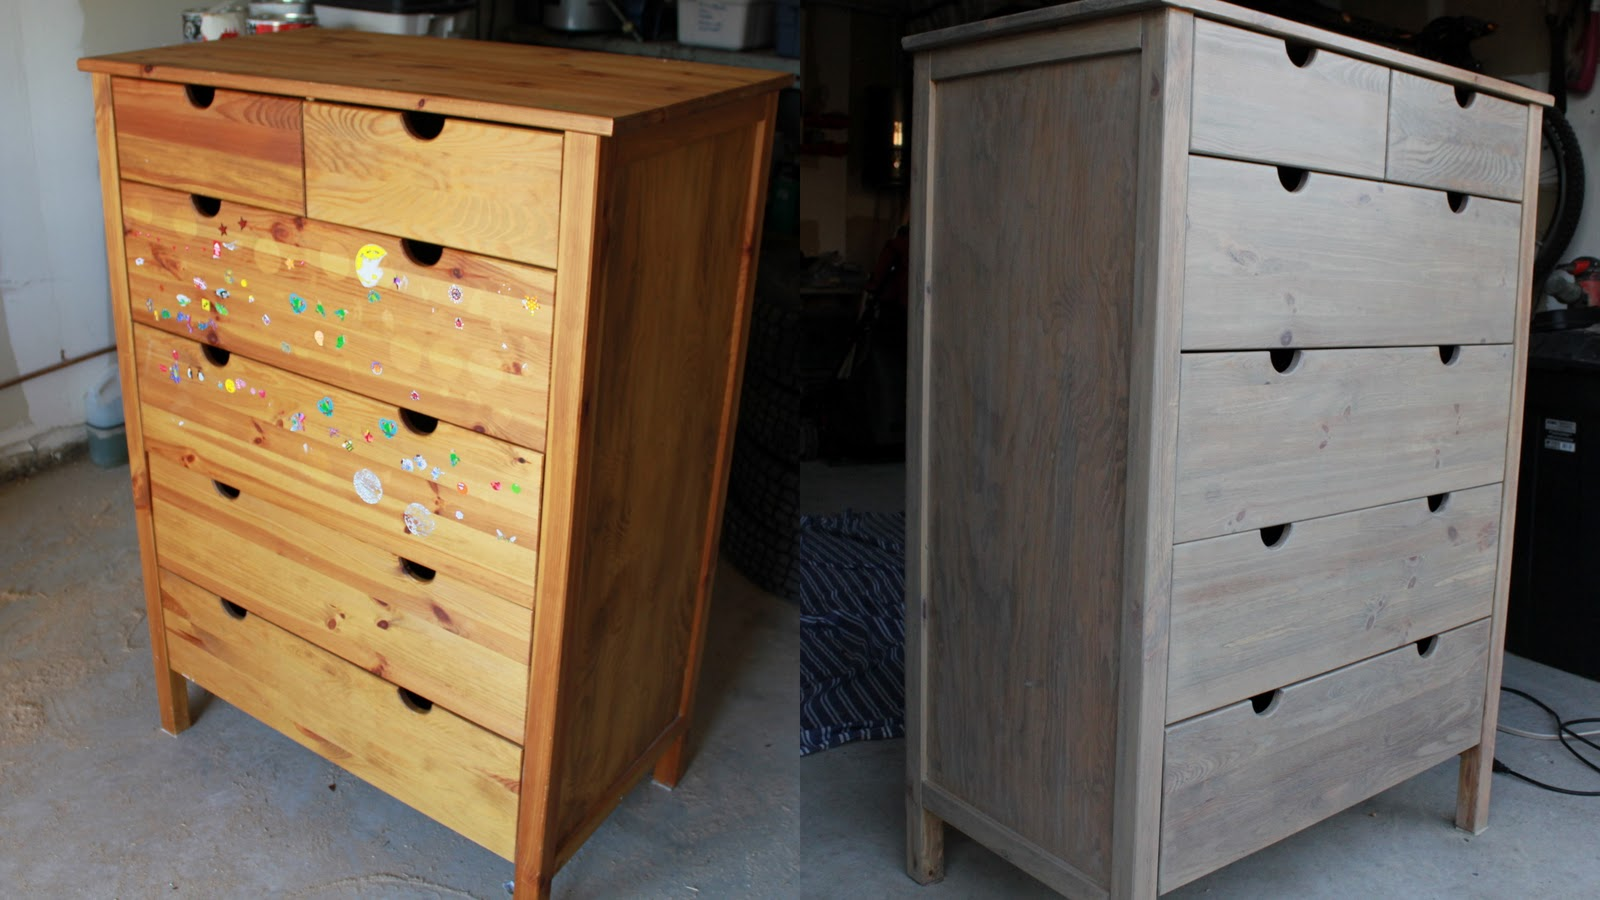 Paint Wash On Wood Turtles And Tails Wash Wax Dresser Refinishing Part Two